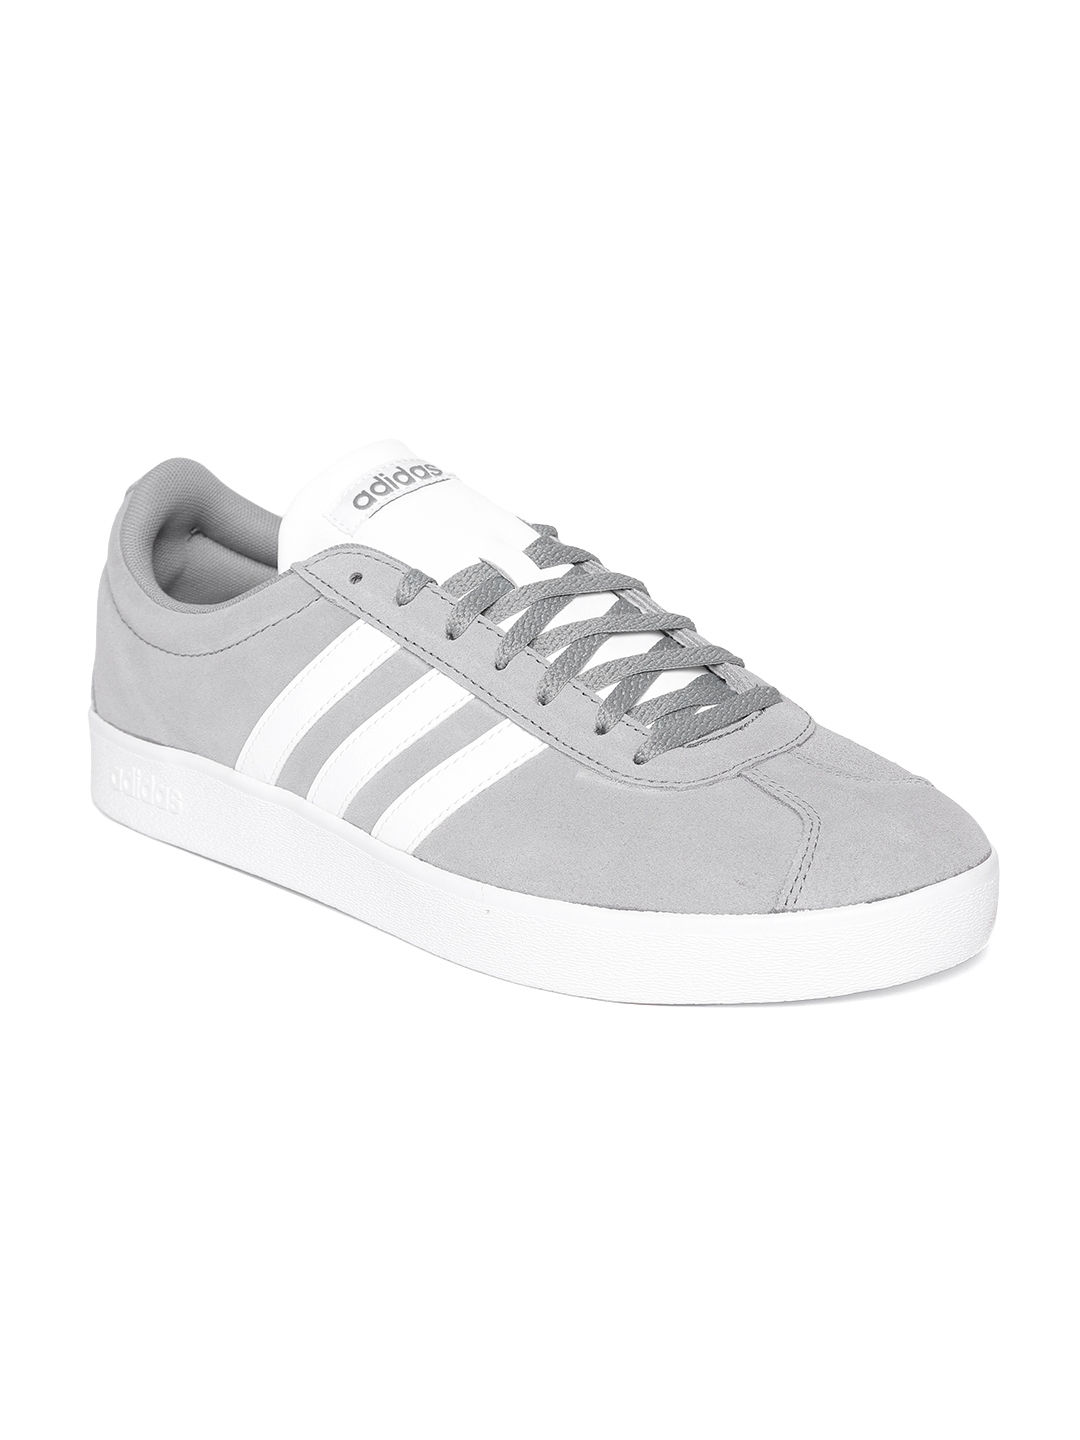 new styles cd9ea 69b69 ADIDAS Originals Men Grey VL Court 2.0 Suede Skateboarding Shoes